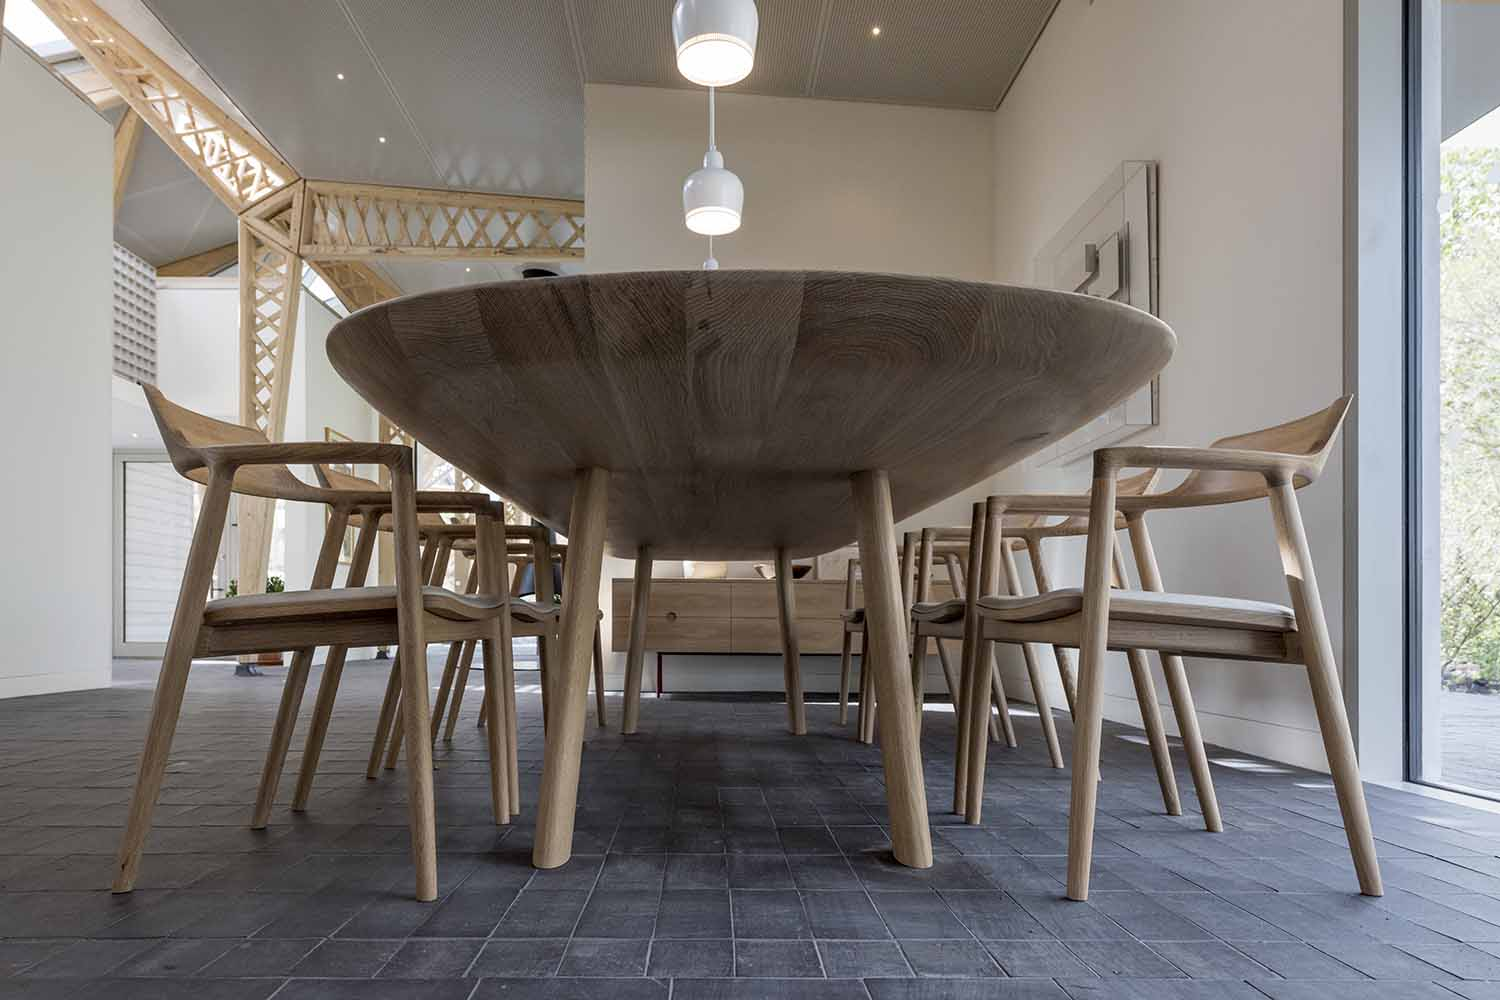 oak kitchen table for Maggie's in Manchester